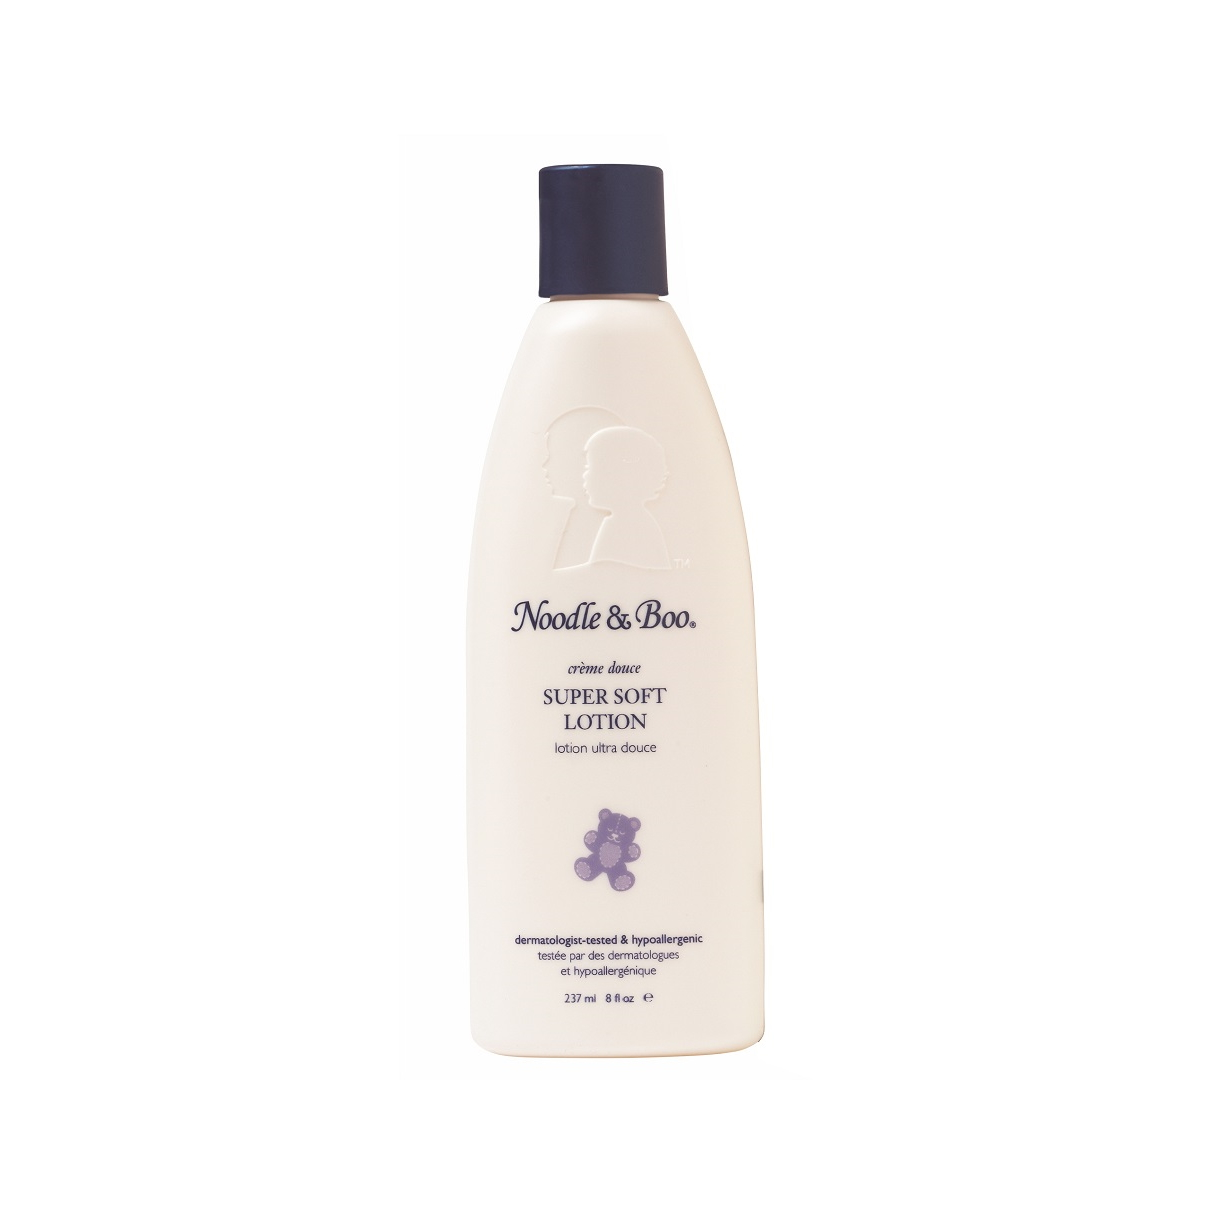 https://www.noodleandbooturkiye.com/media/uploads/files/supersoft lotion_1608822470155897FeY.jpg